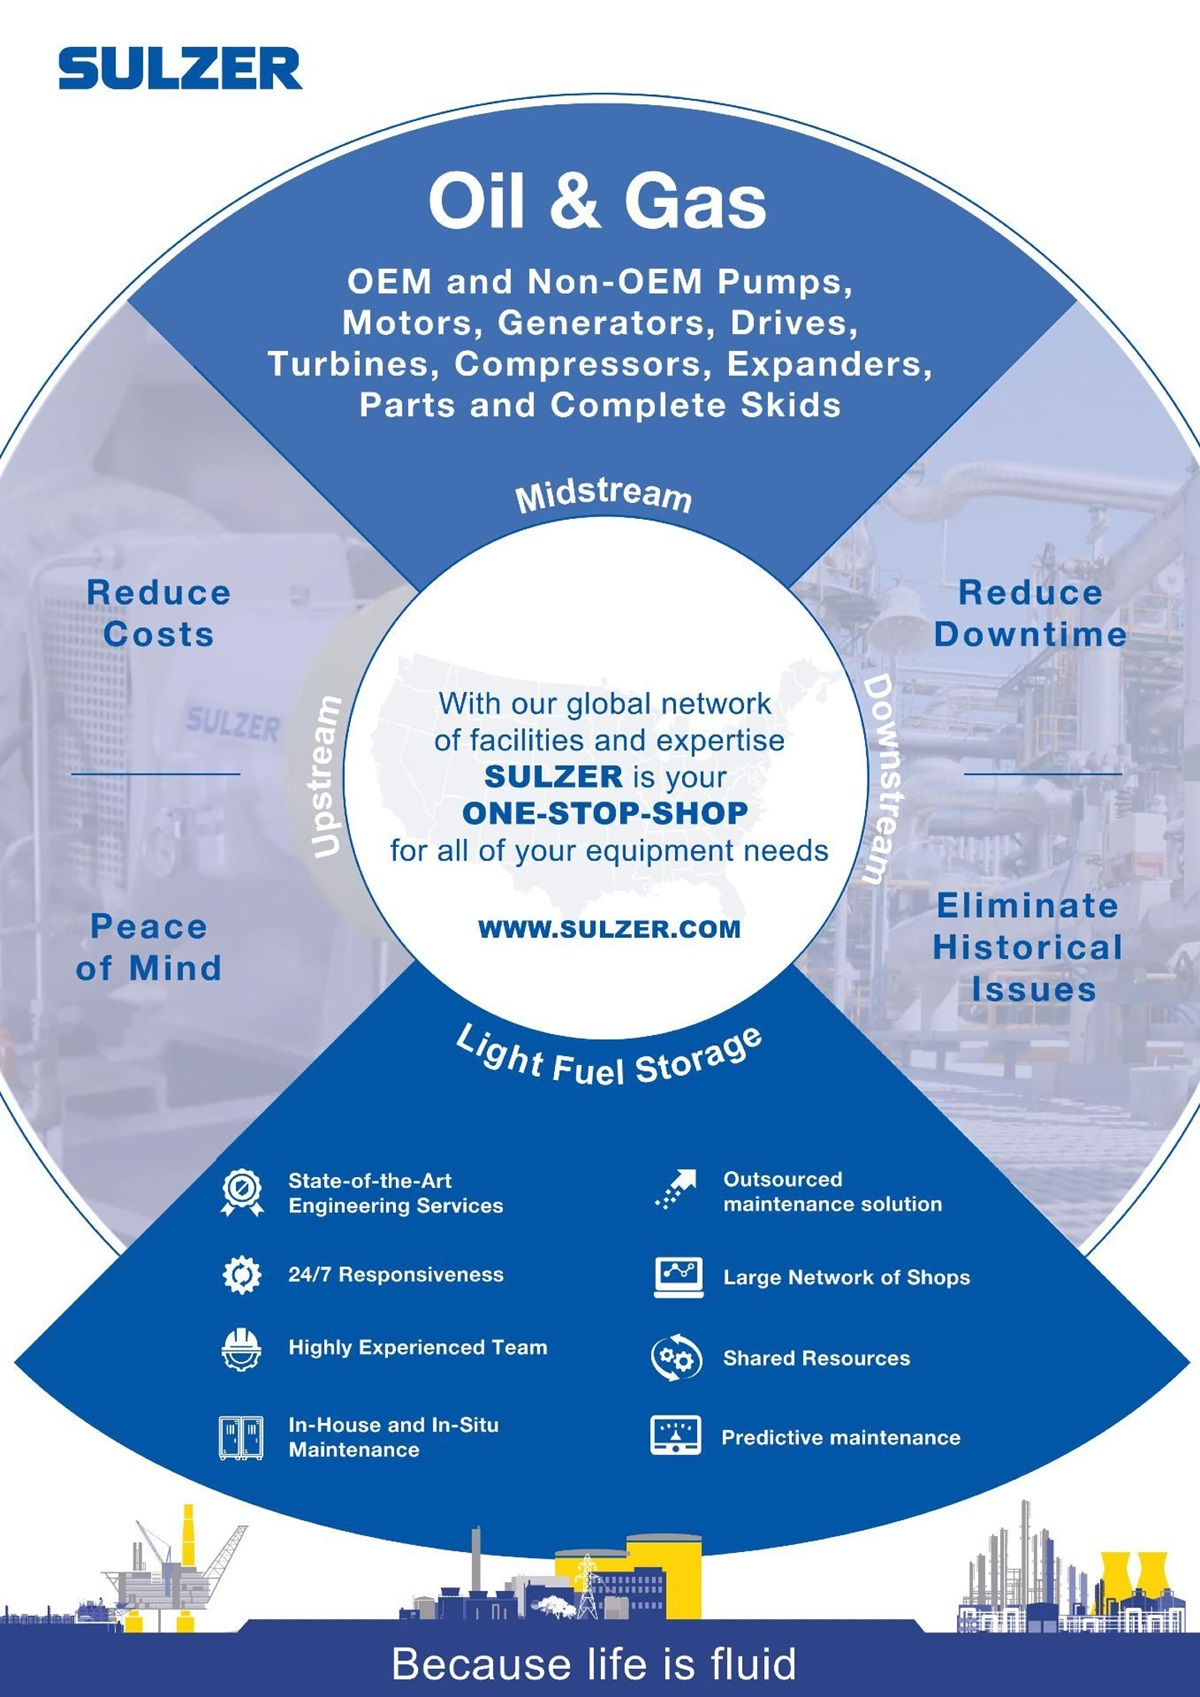 Infographic about Sulzer rotating equipment solutions for oil, gas and light fuel storage